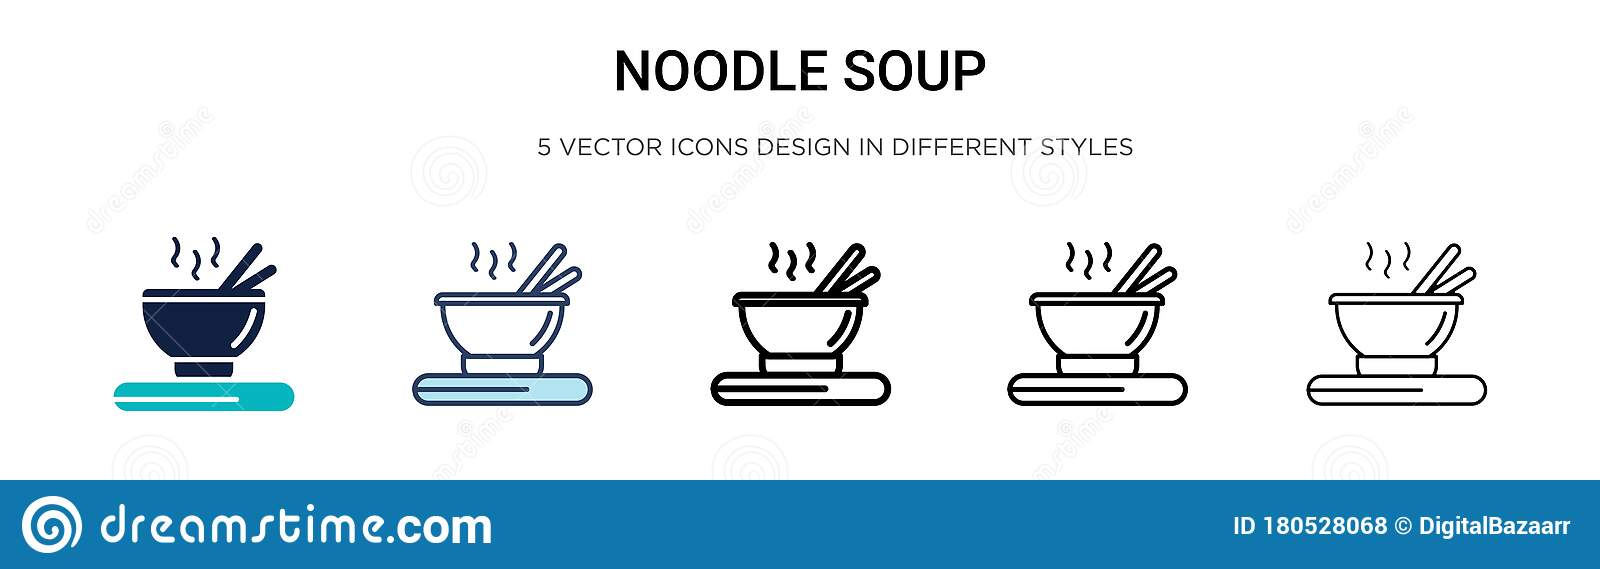 Noodle Soup Icon In Filled Thin Line Outline And Stroke Style Vector Illustration Of Two Colored And Black Noodle Soup Vector Stock Vector Illustration Of Chopsticks Dish 180528068